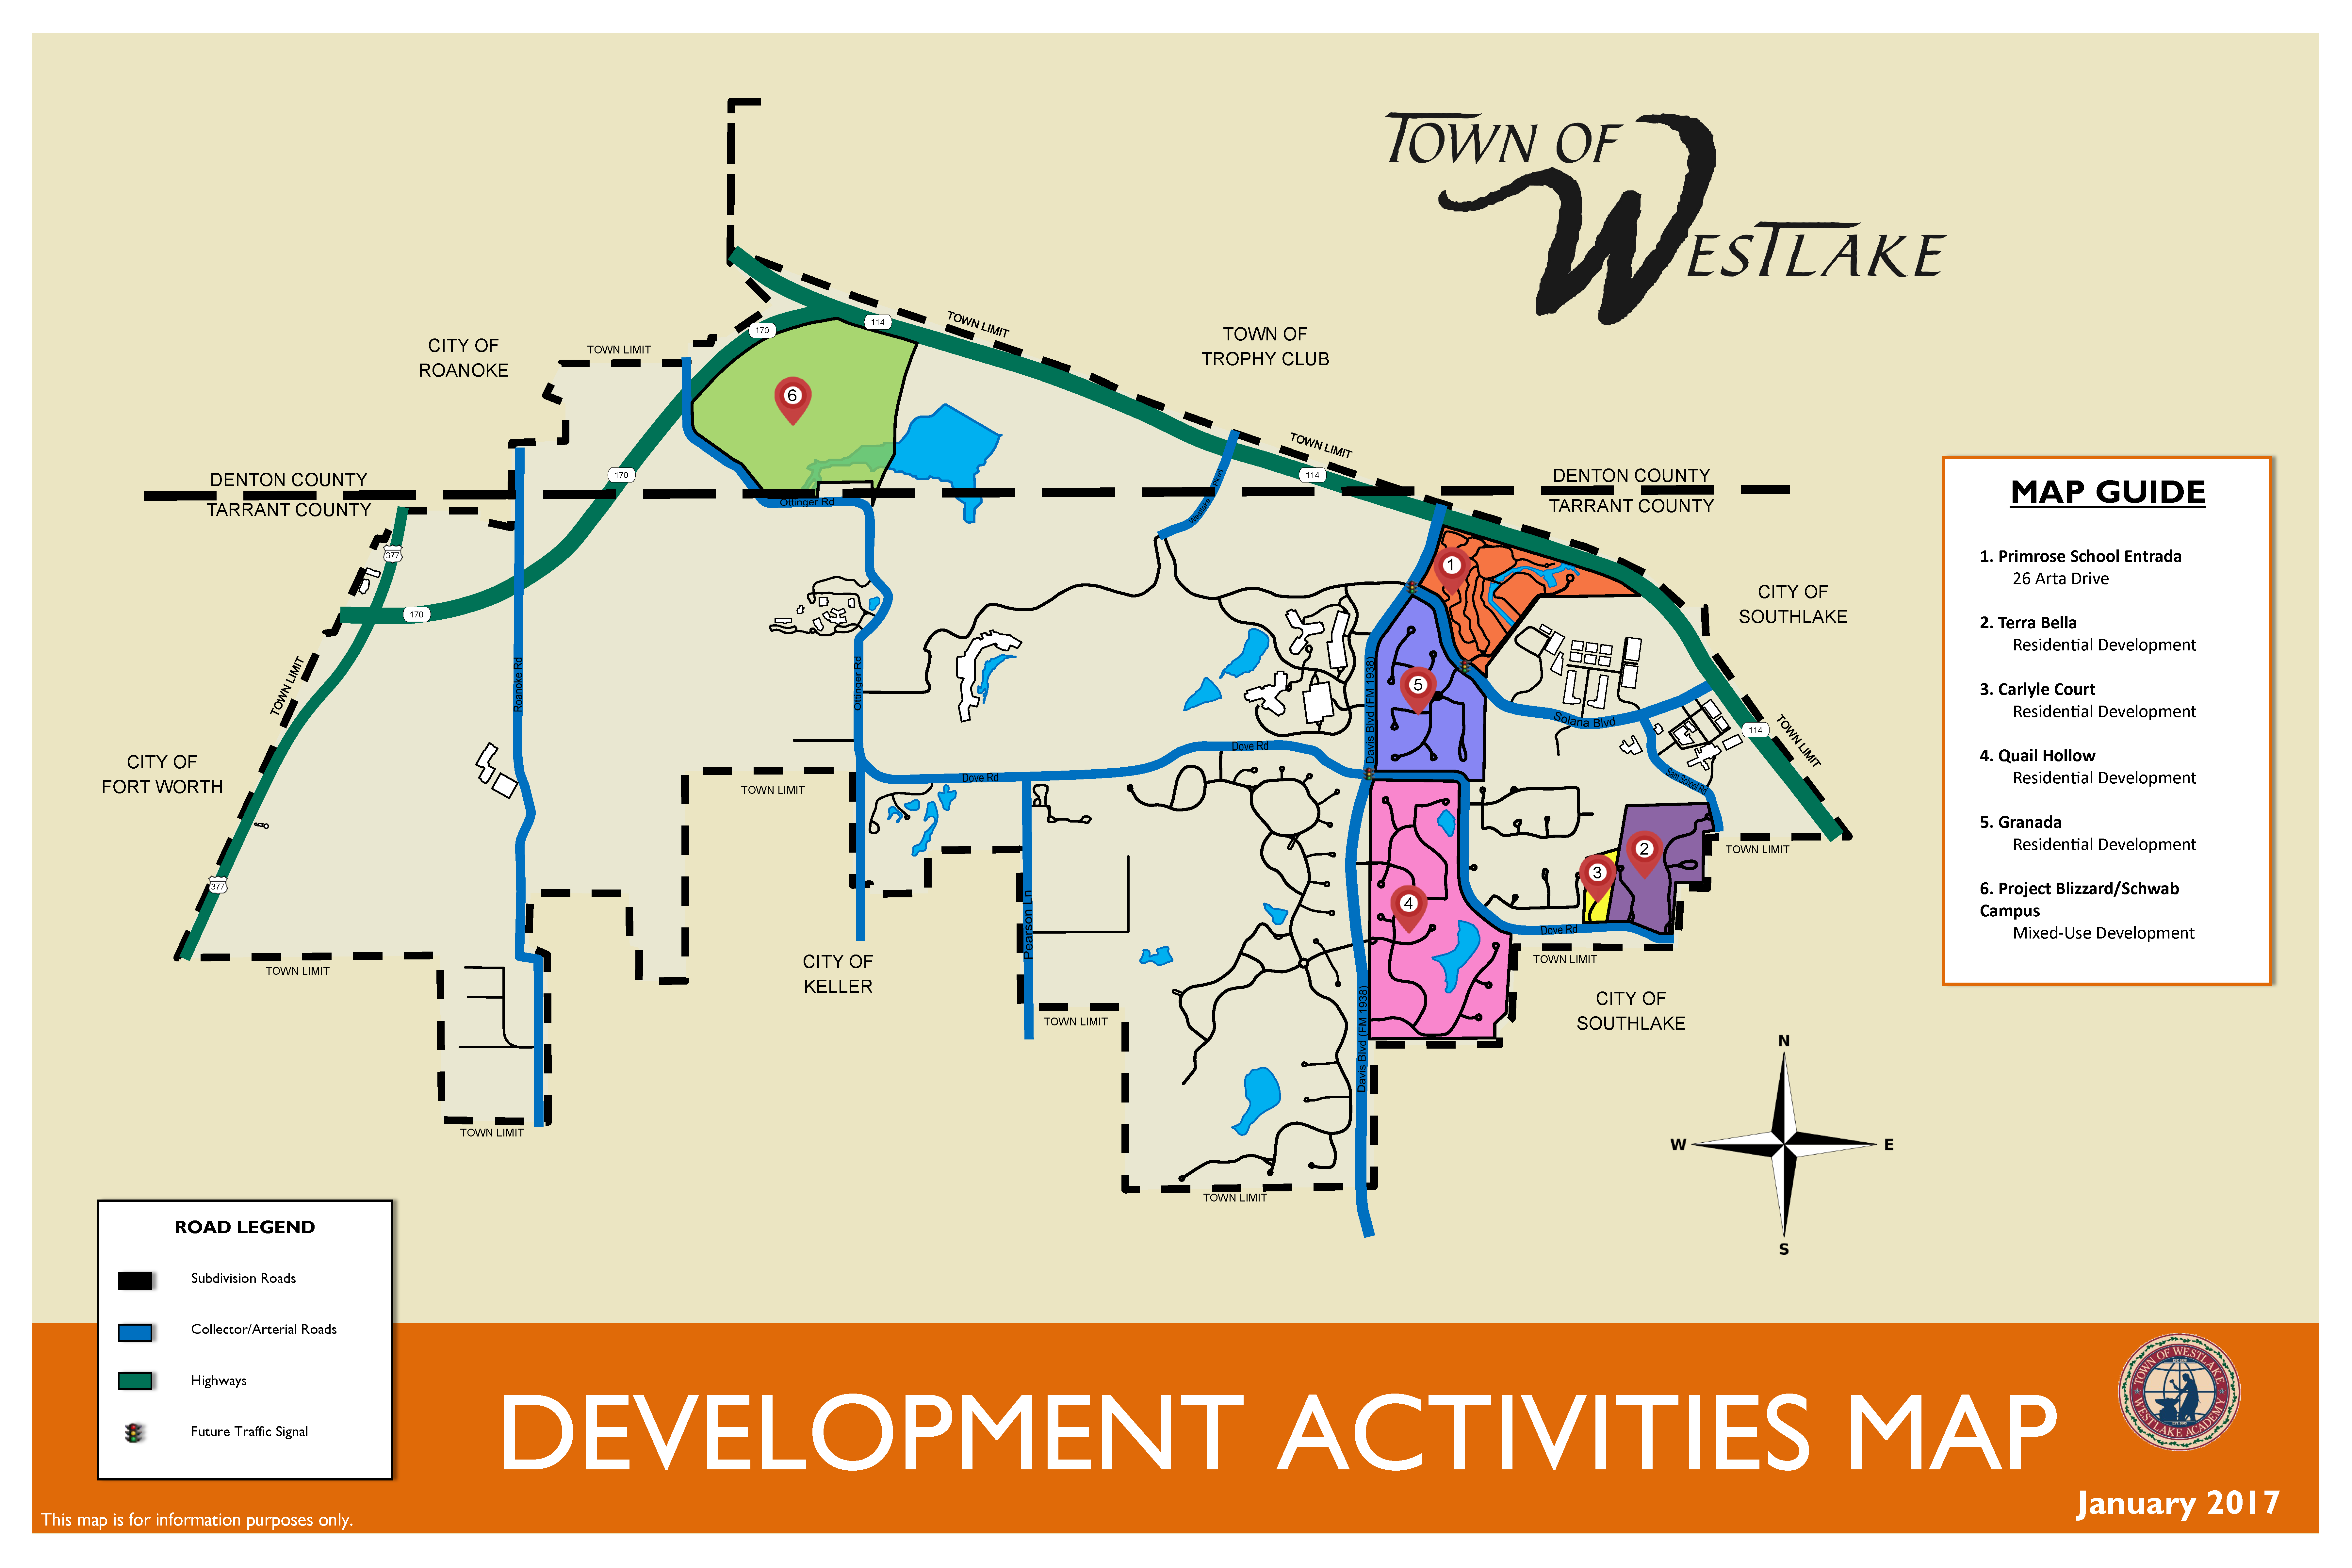 Development Activities